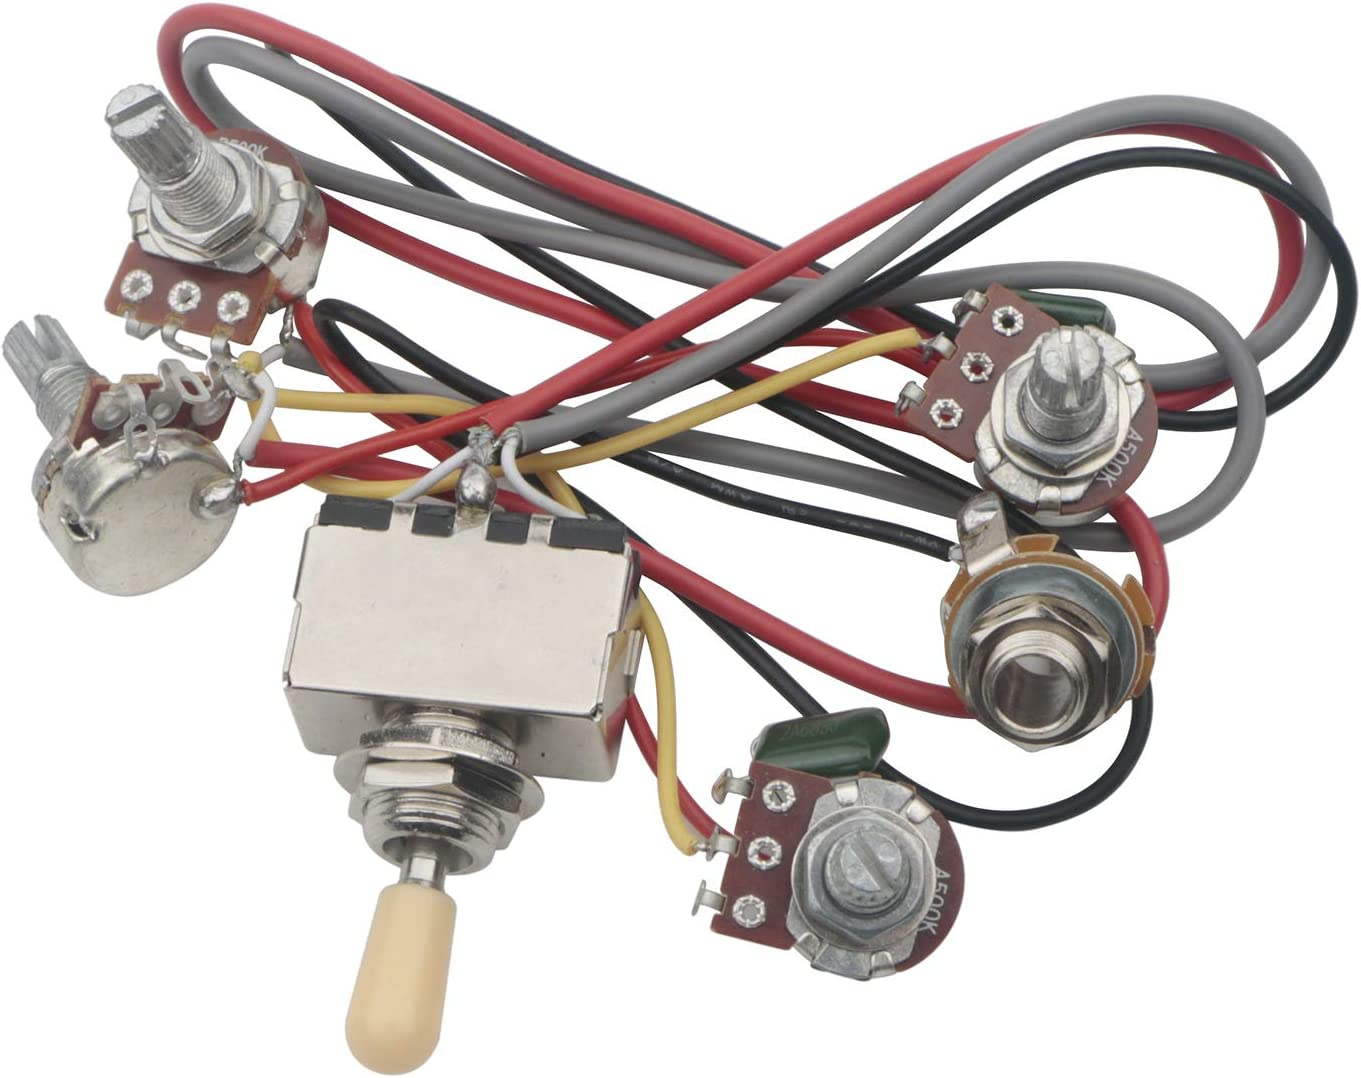 Amazon.com: Guitar Wiring Harness Prewired 2 Volumes 2 Tones 4-500k Pots  for LP Guitar: Musical Instruments   Bass Wiring Diagram 2 Volume 2 Tone      Amazon.com